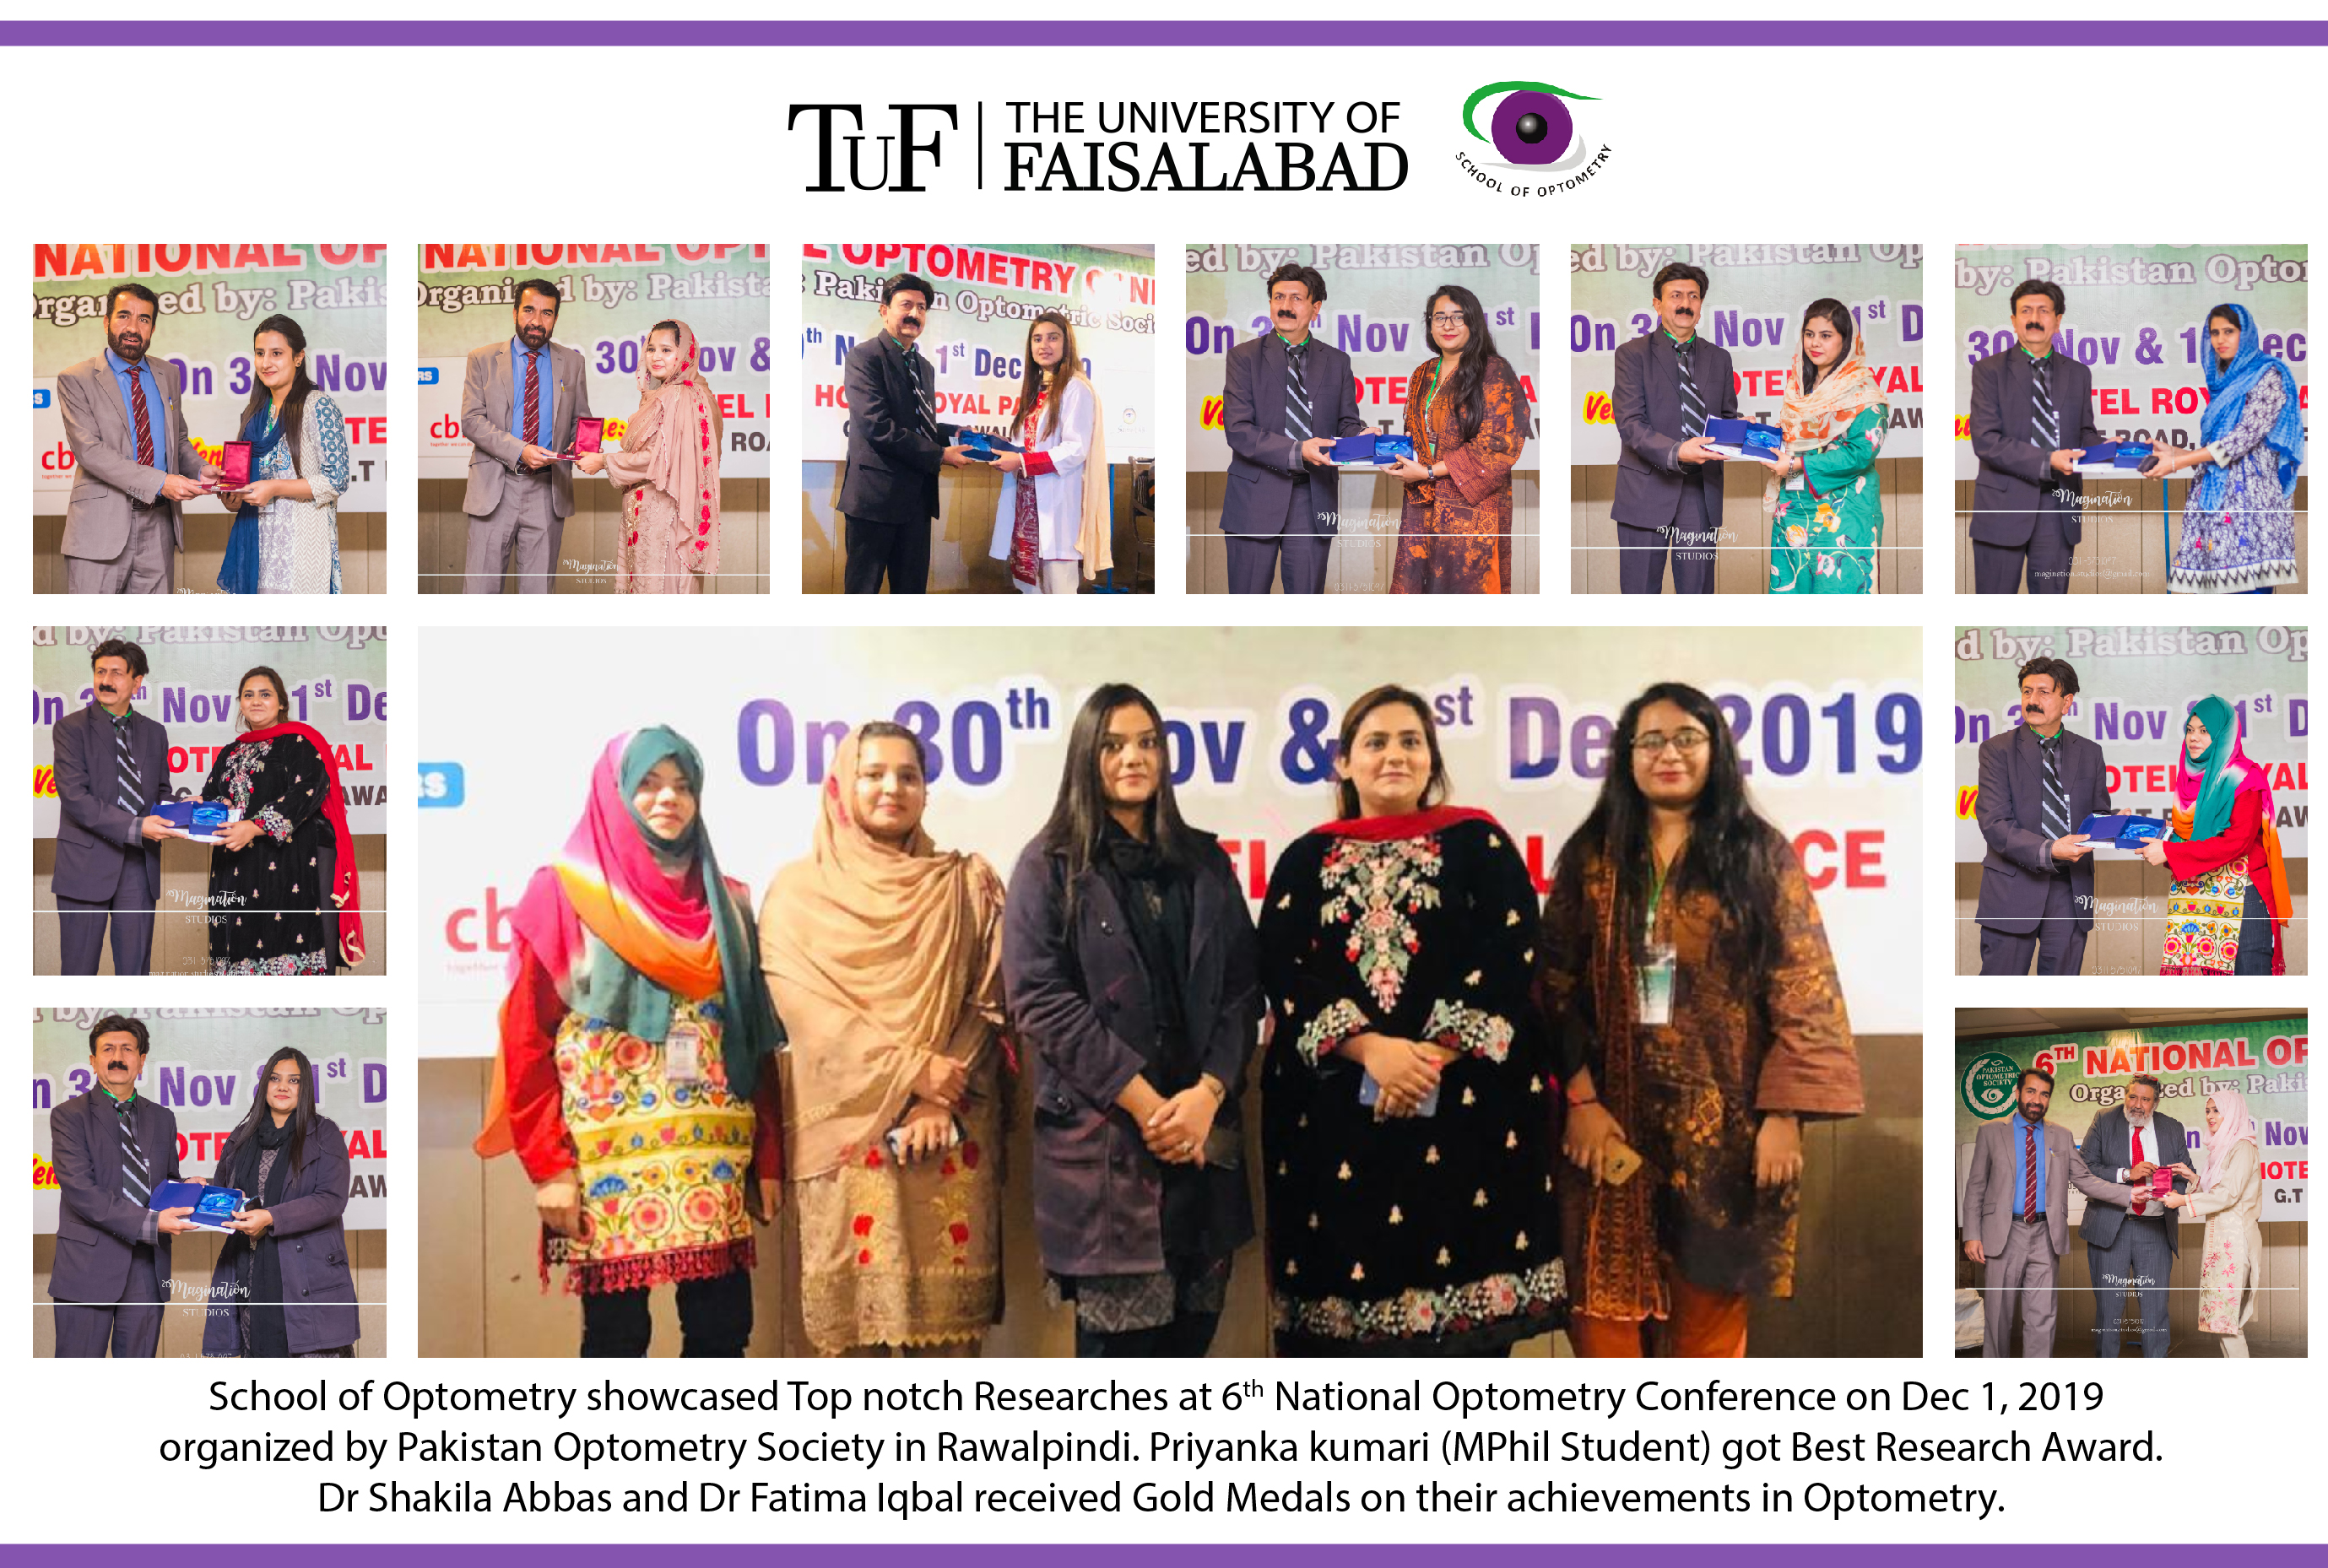 School of Optometry showcased Top Notch Researchs at 6th National Optometry Conference